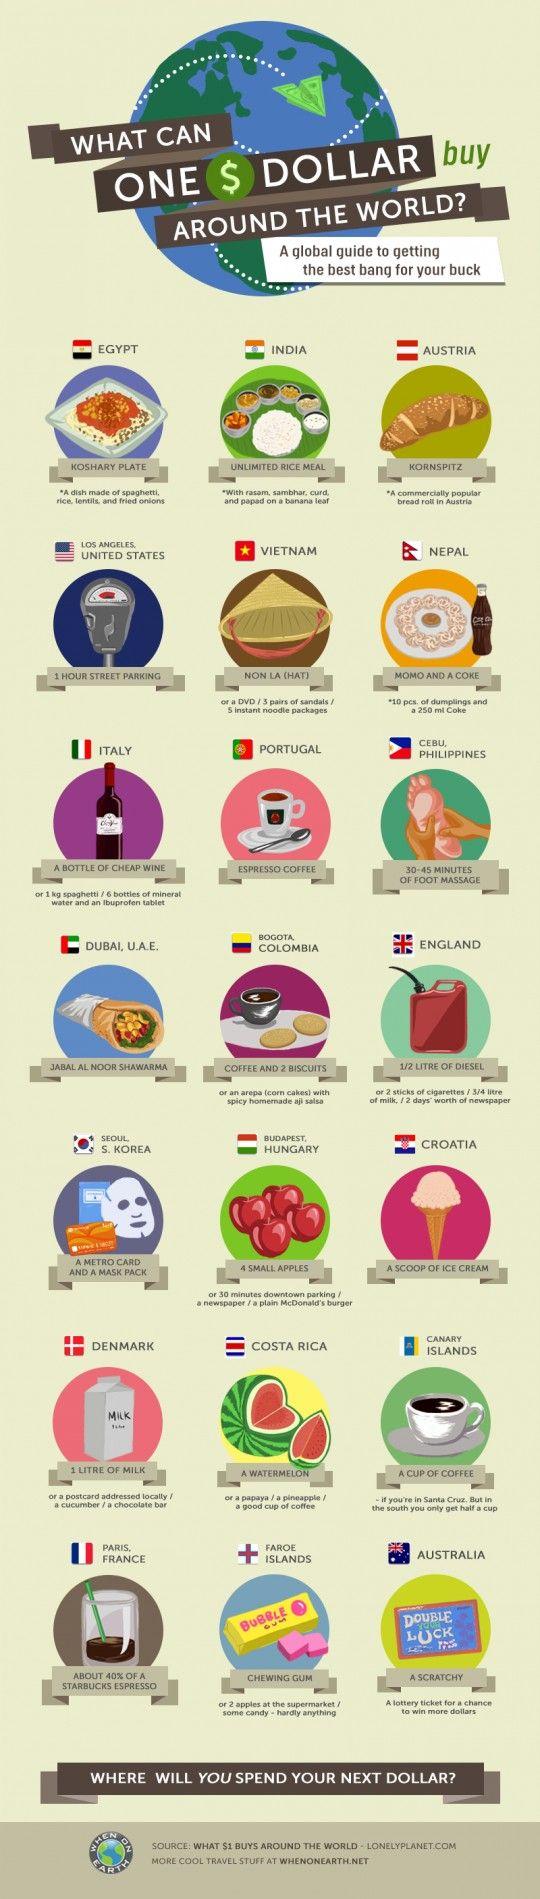 What Can One $ Dollar Buy Around the World